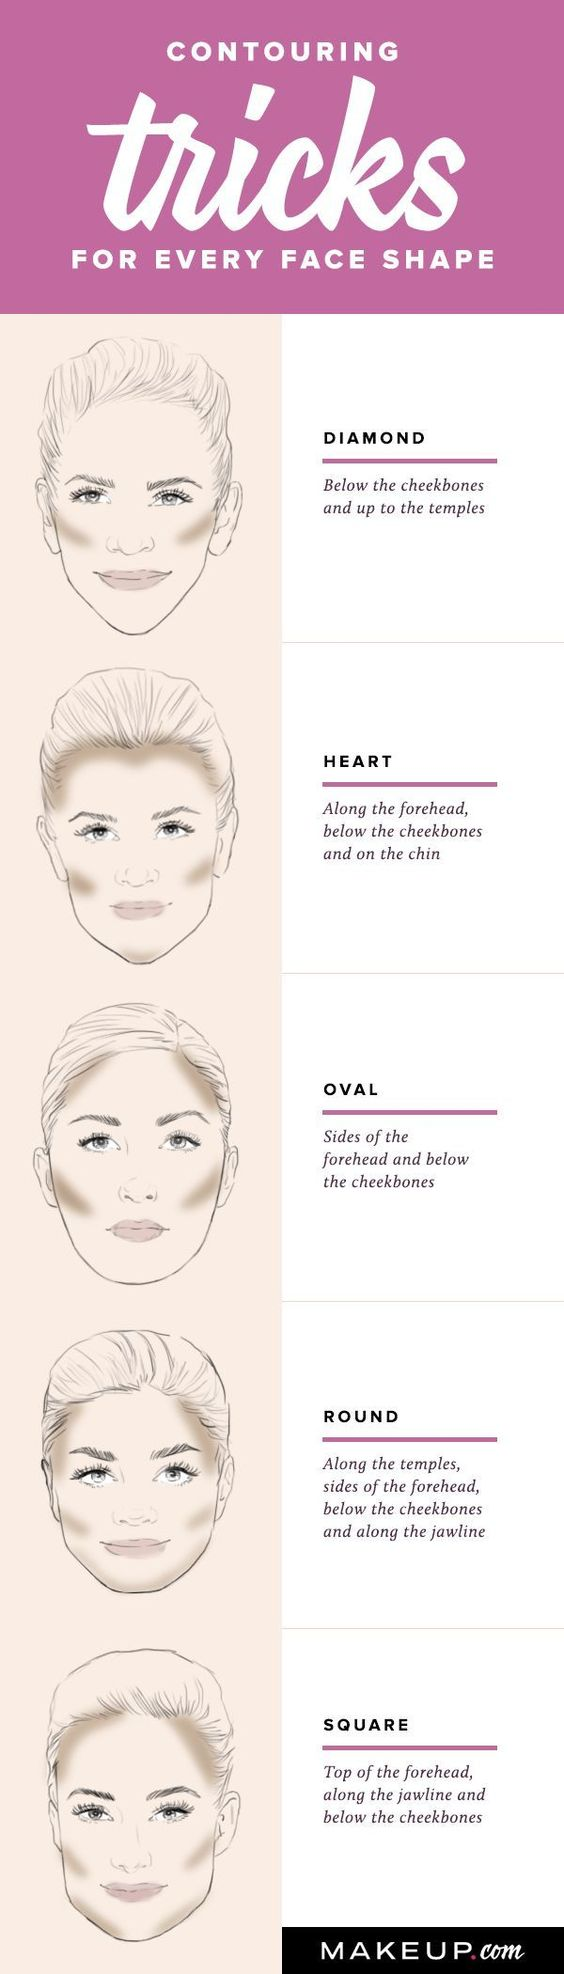 Contouring and highlighting is the best way to make your facial features stand out. Easy conturing tutorials don't come around very often, but our DIY tutorial is the best guide you'll find for making your makeup and beauty game its very best for your face shape.